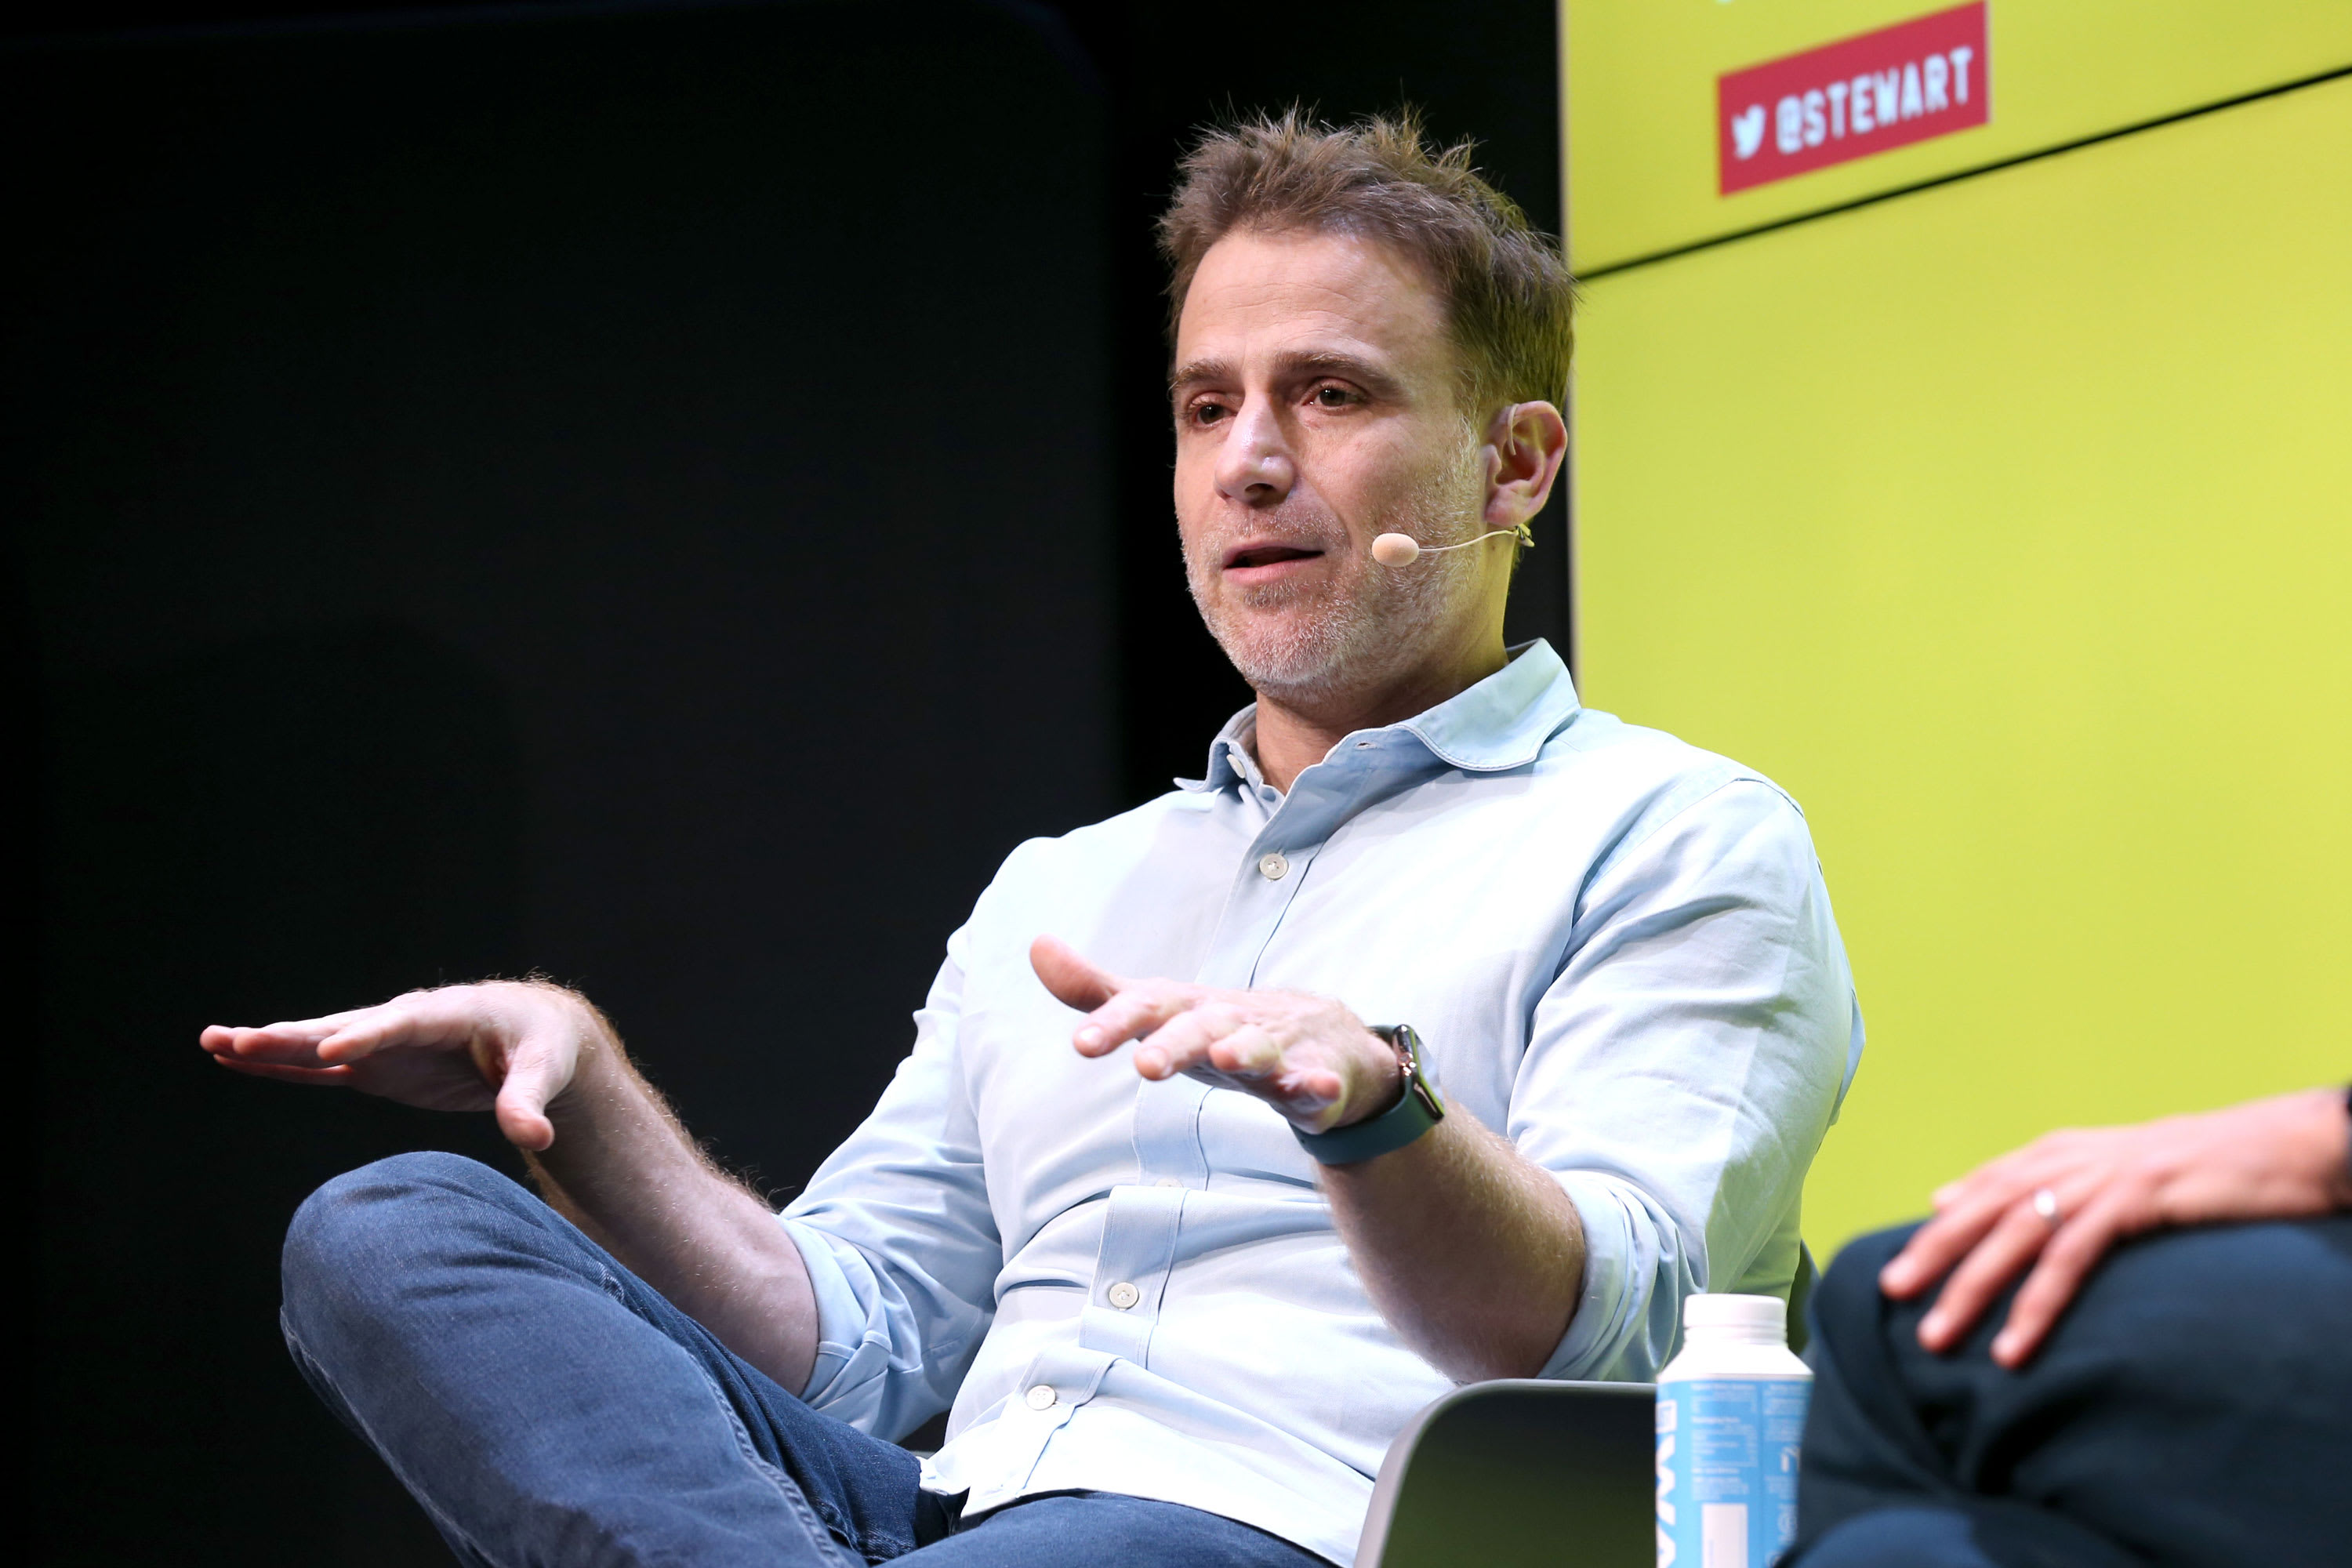 Slack stock down after Q1 earnings, slower growth than Zoom